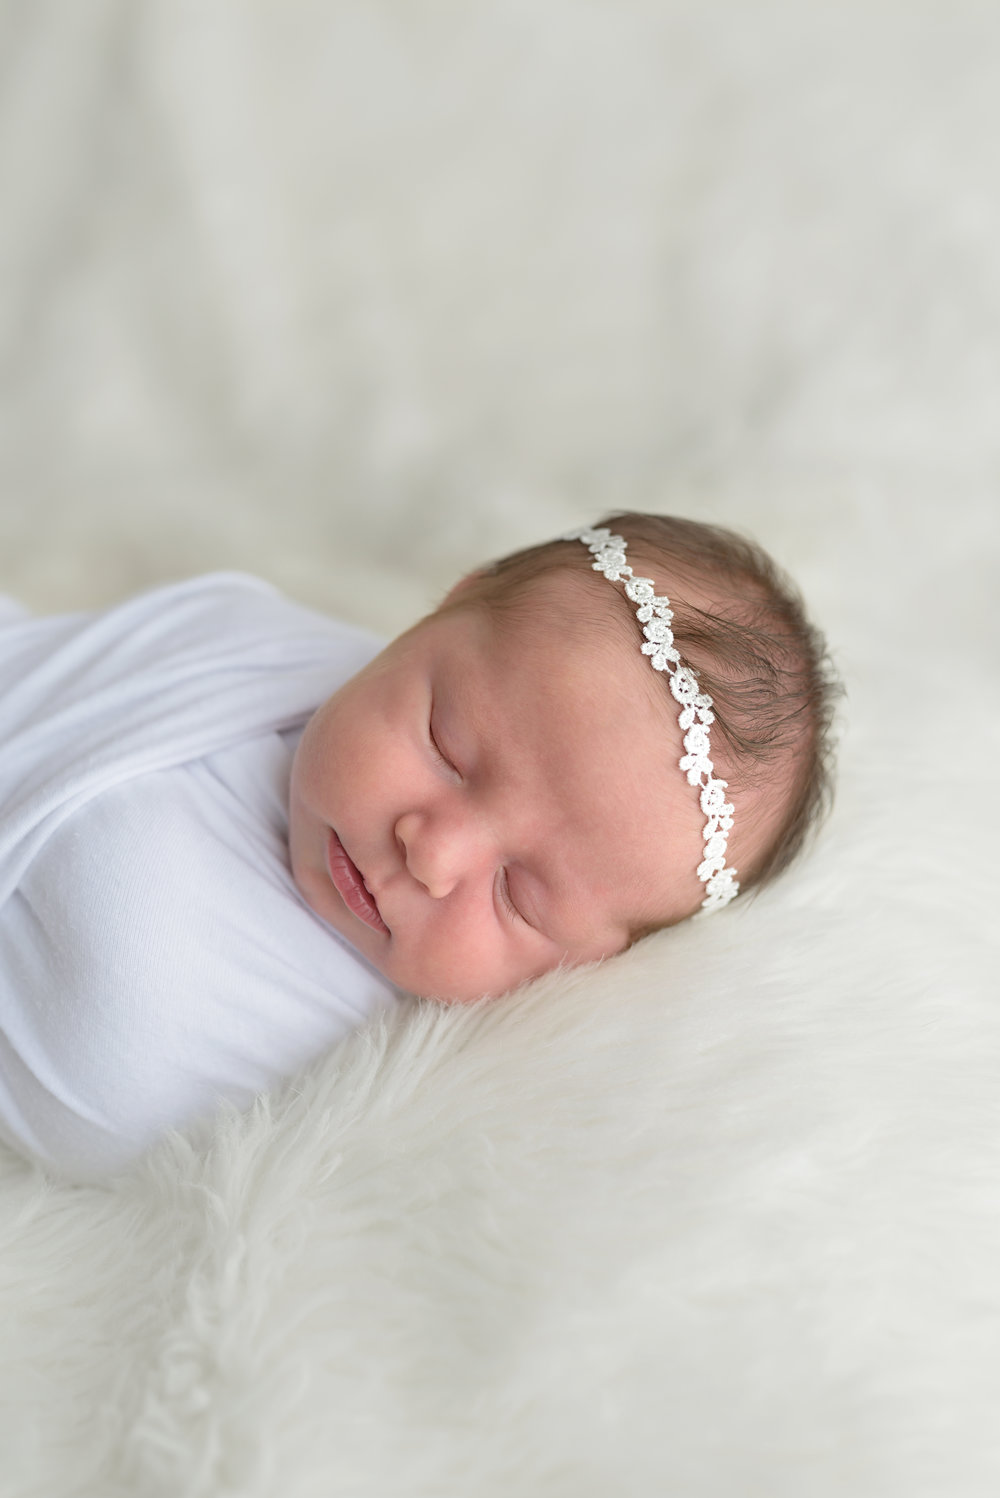 Charleston-Newborn-Photographer-Following-Seas-Photography-fsp_5178 copy.jpg